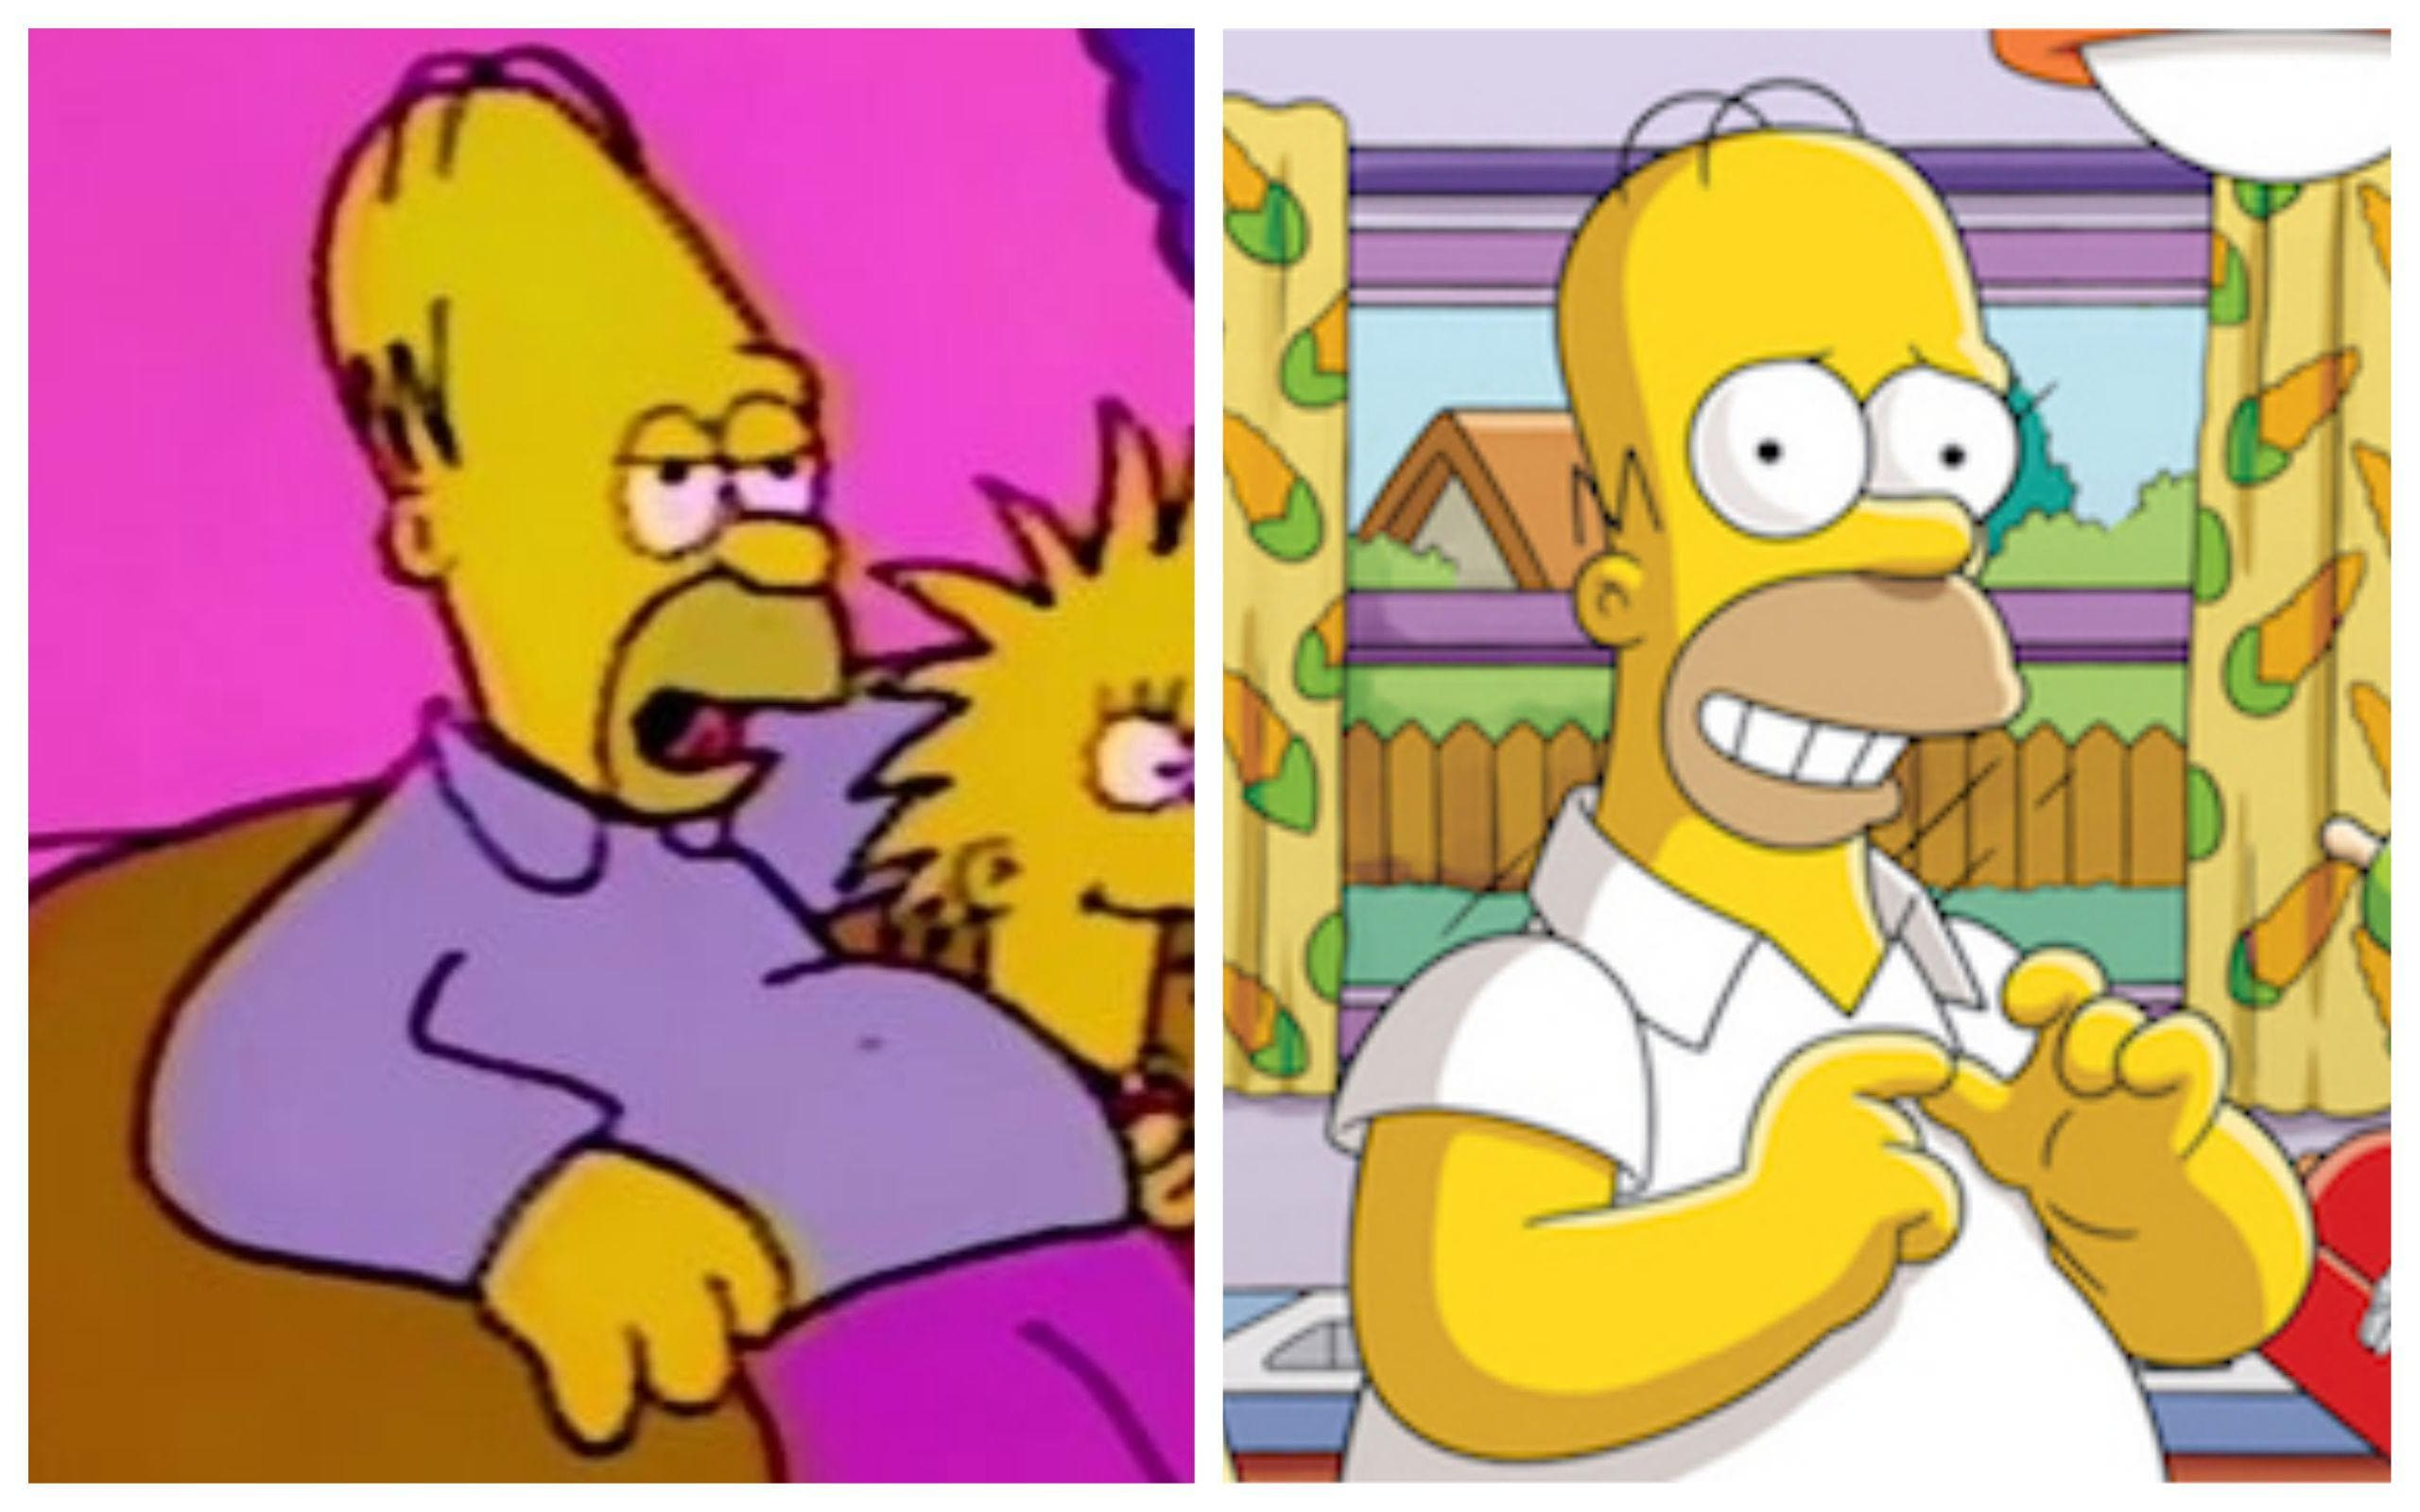 Random Fatcs About How The Simpsons Evolved Over Time